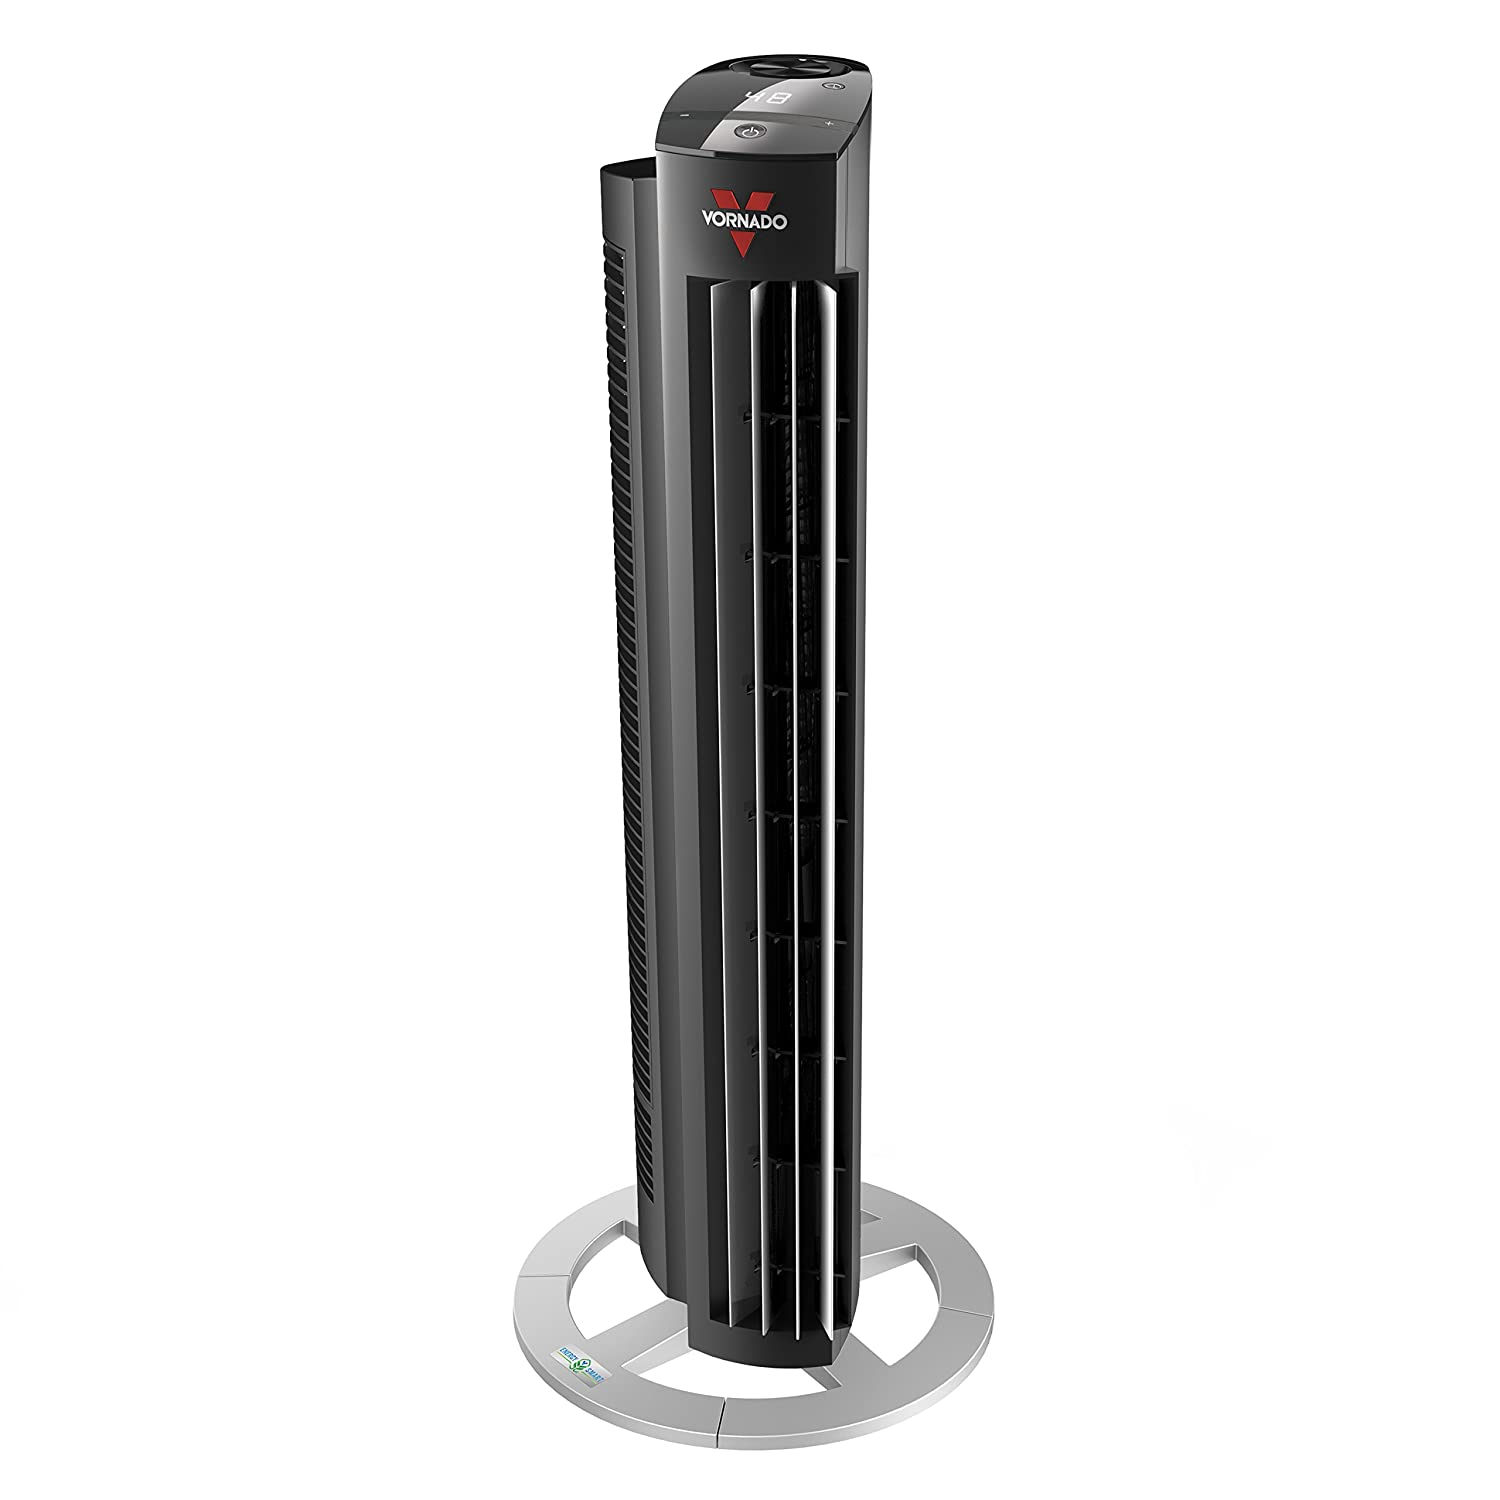 Vornado NGT33DC Energy Smart Tower Air Circulator Fan with Variable Speed, 33